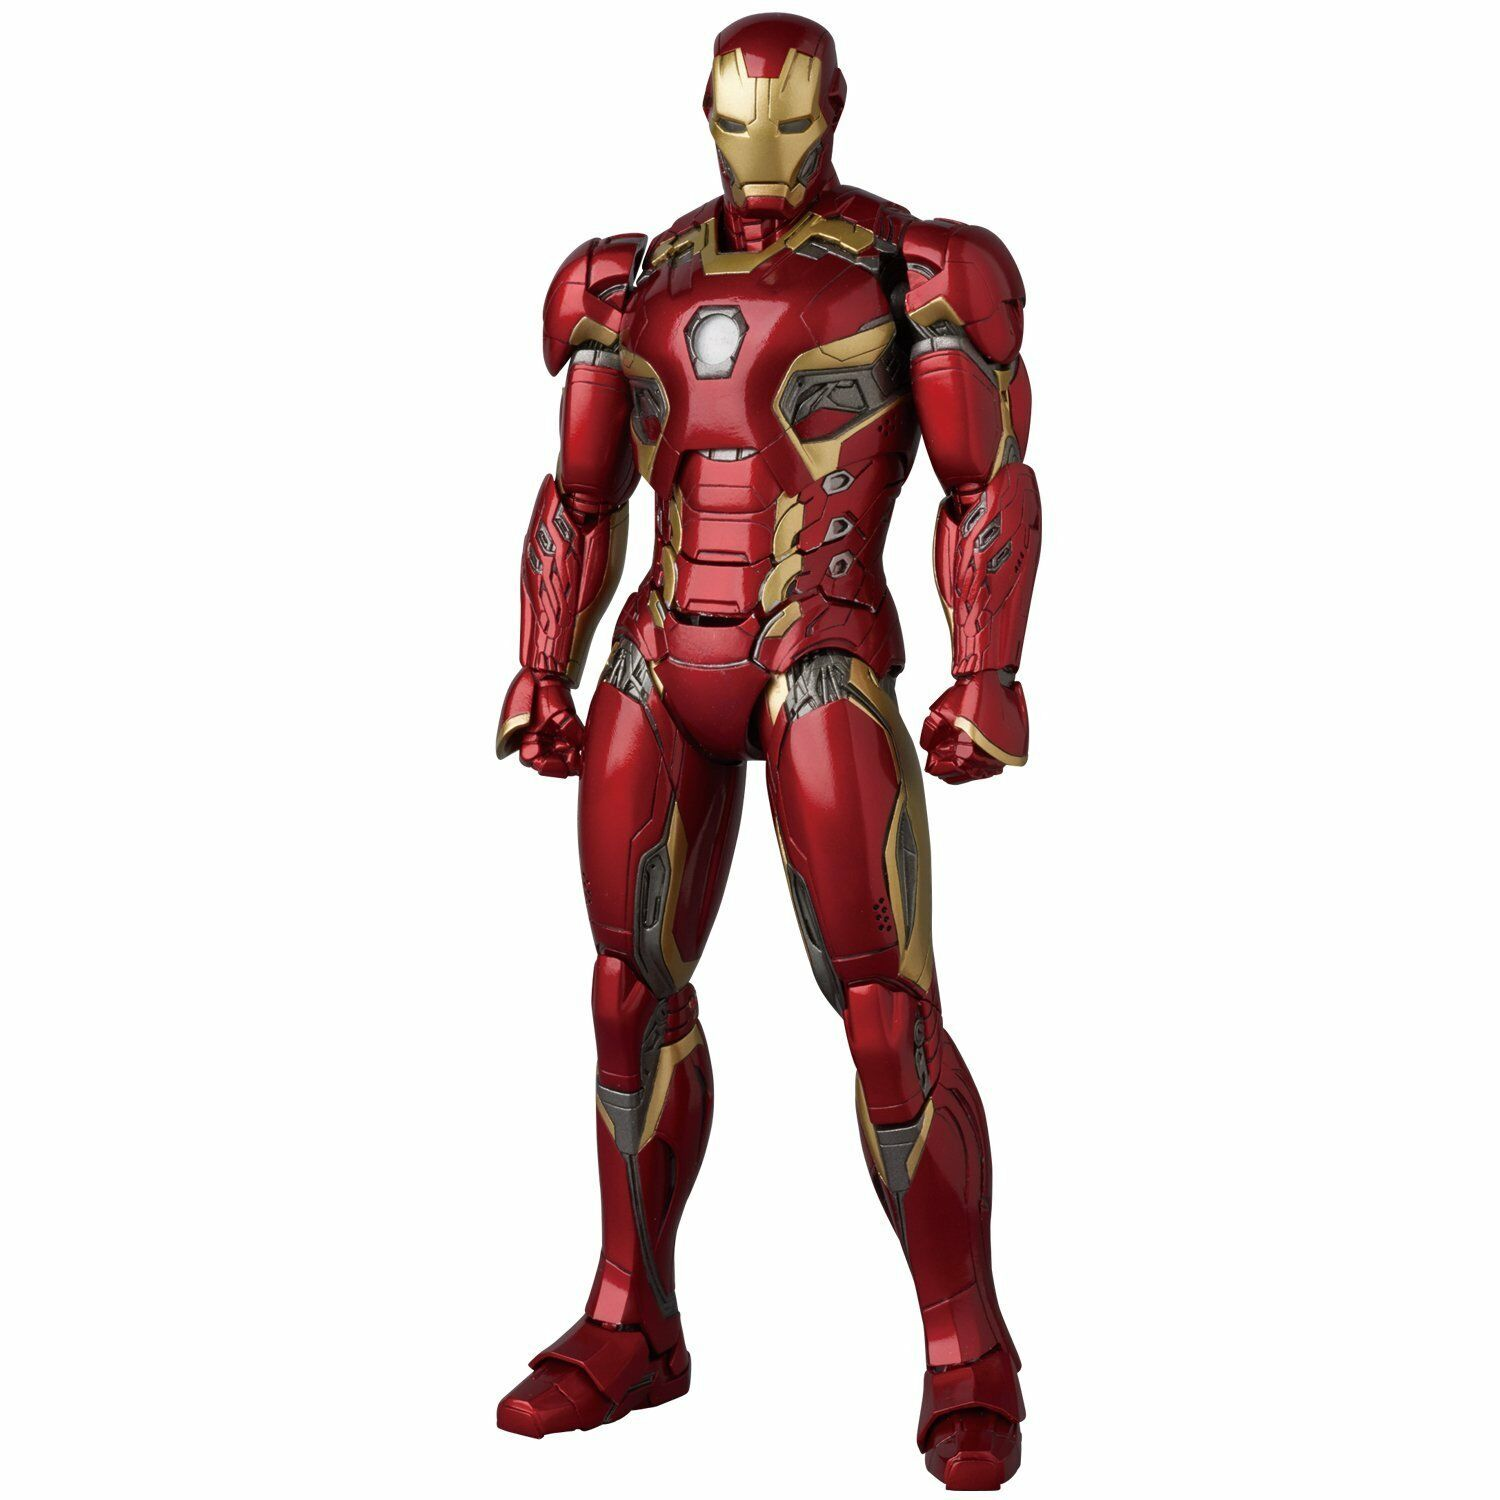 MAFEX Avengers Age Of Ultron Iron Man Mark 45 Japan version